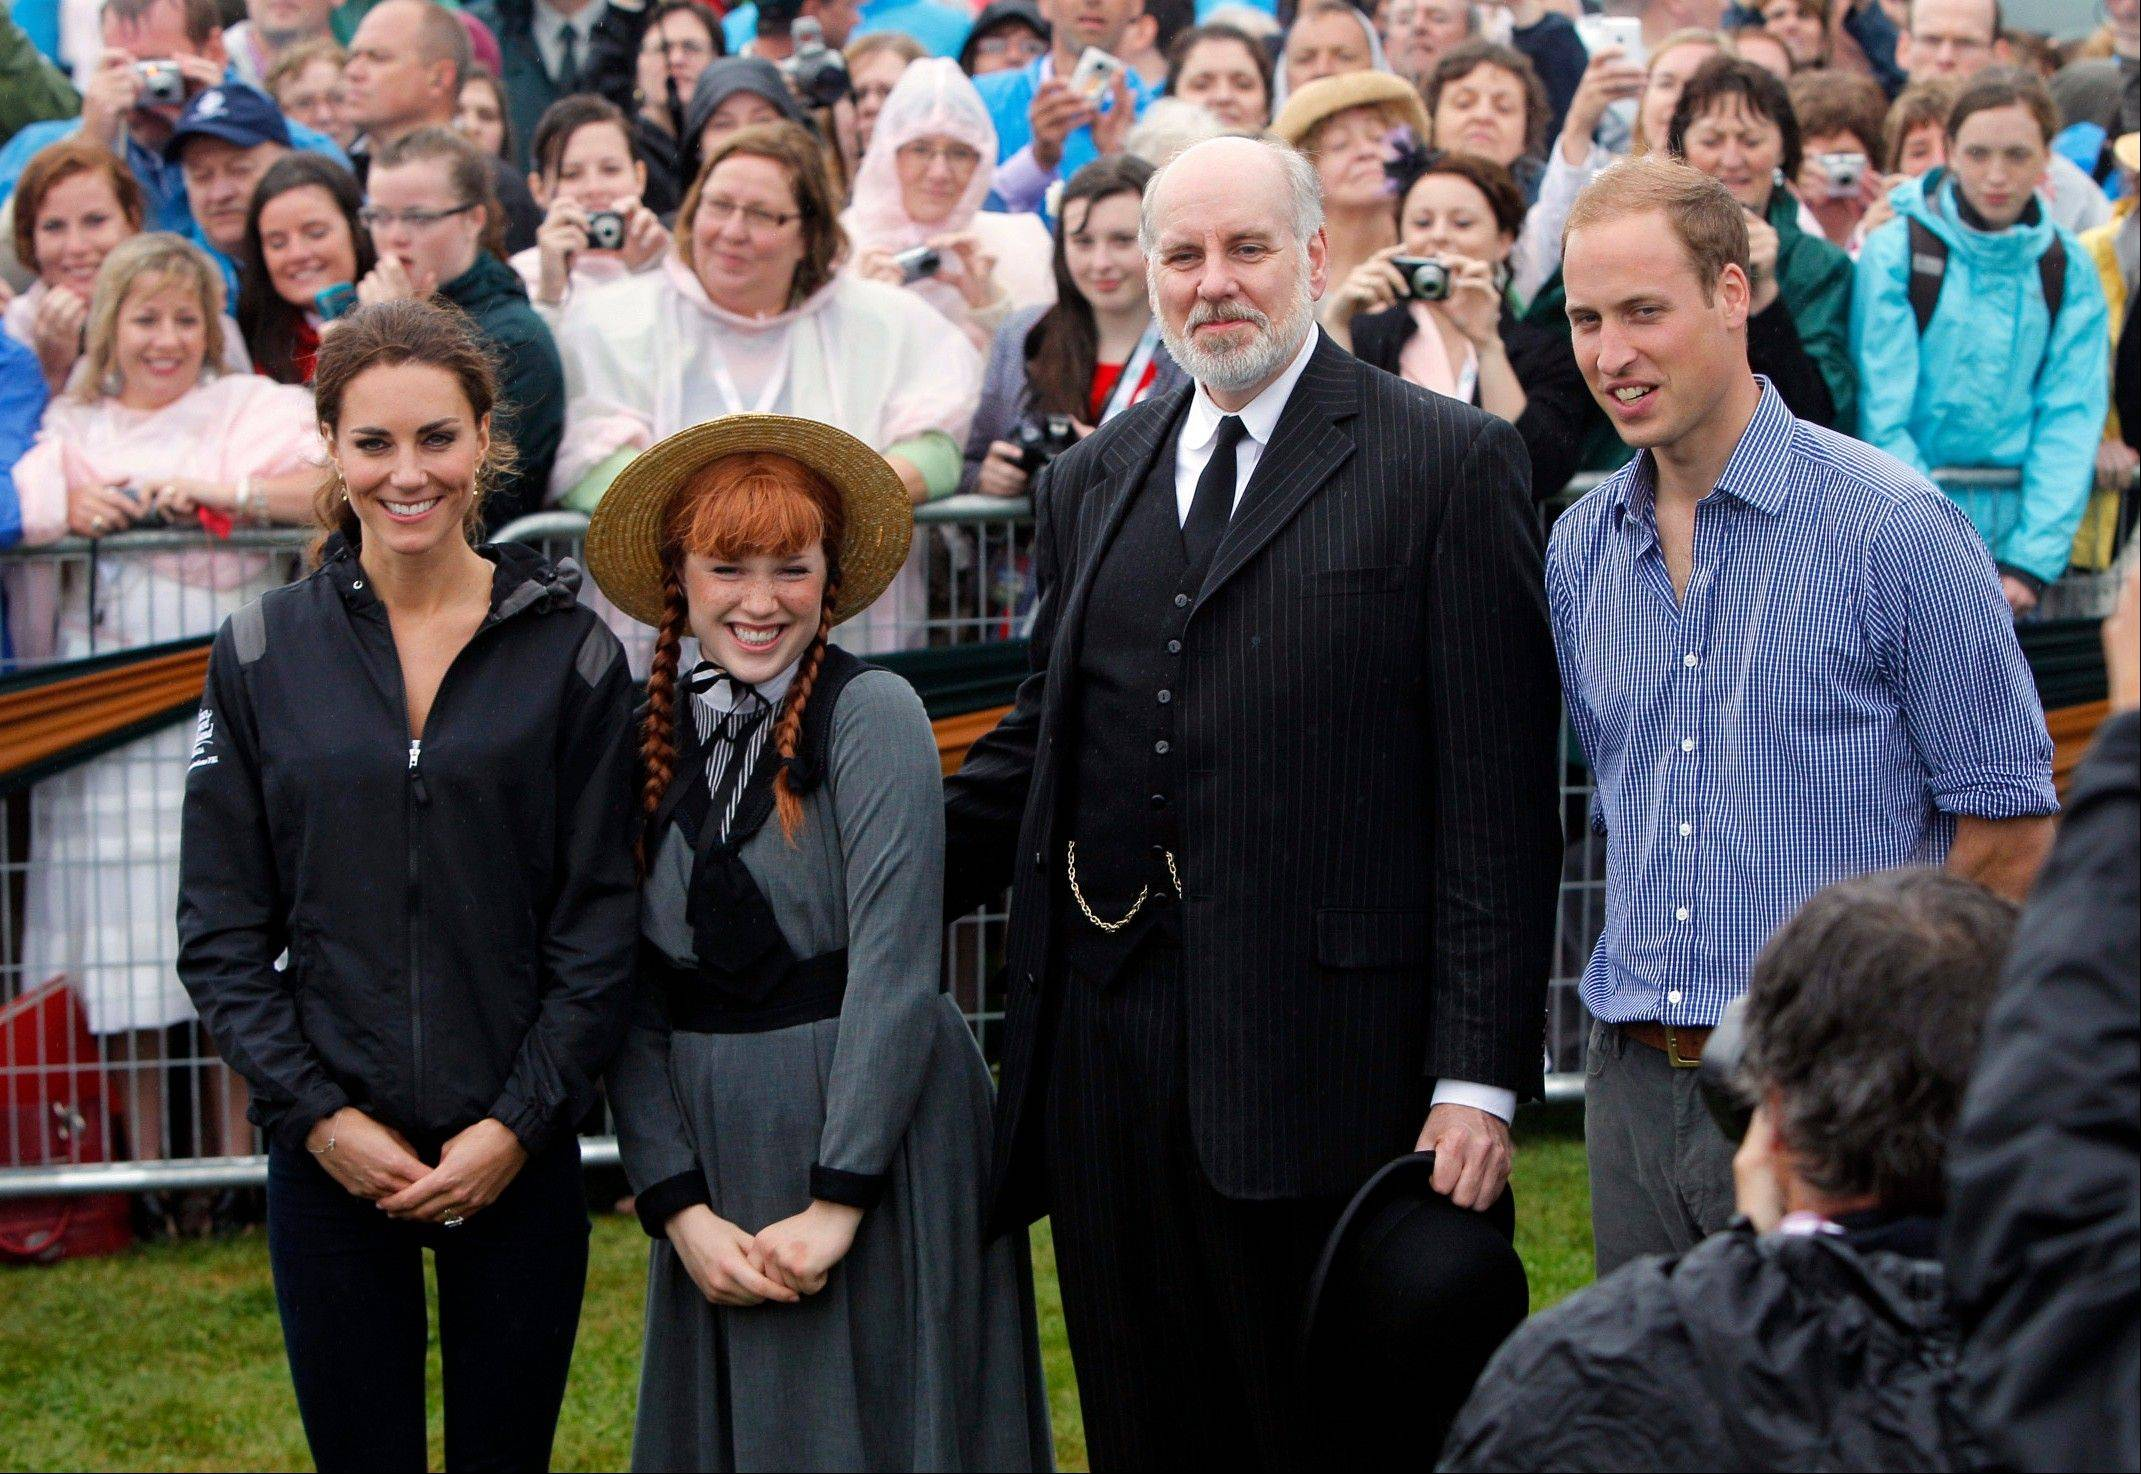 Prince William and his wife Kate, the Duke and Duchess of Cambridge, poses with Anne of Green Gables characters in Dalvay-by-the-Sea on Prince Edward Island as part of their Royal Tour of Canada, Monday, July 4, 2011.